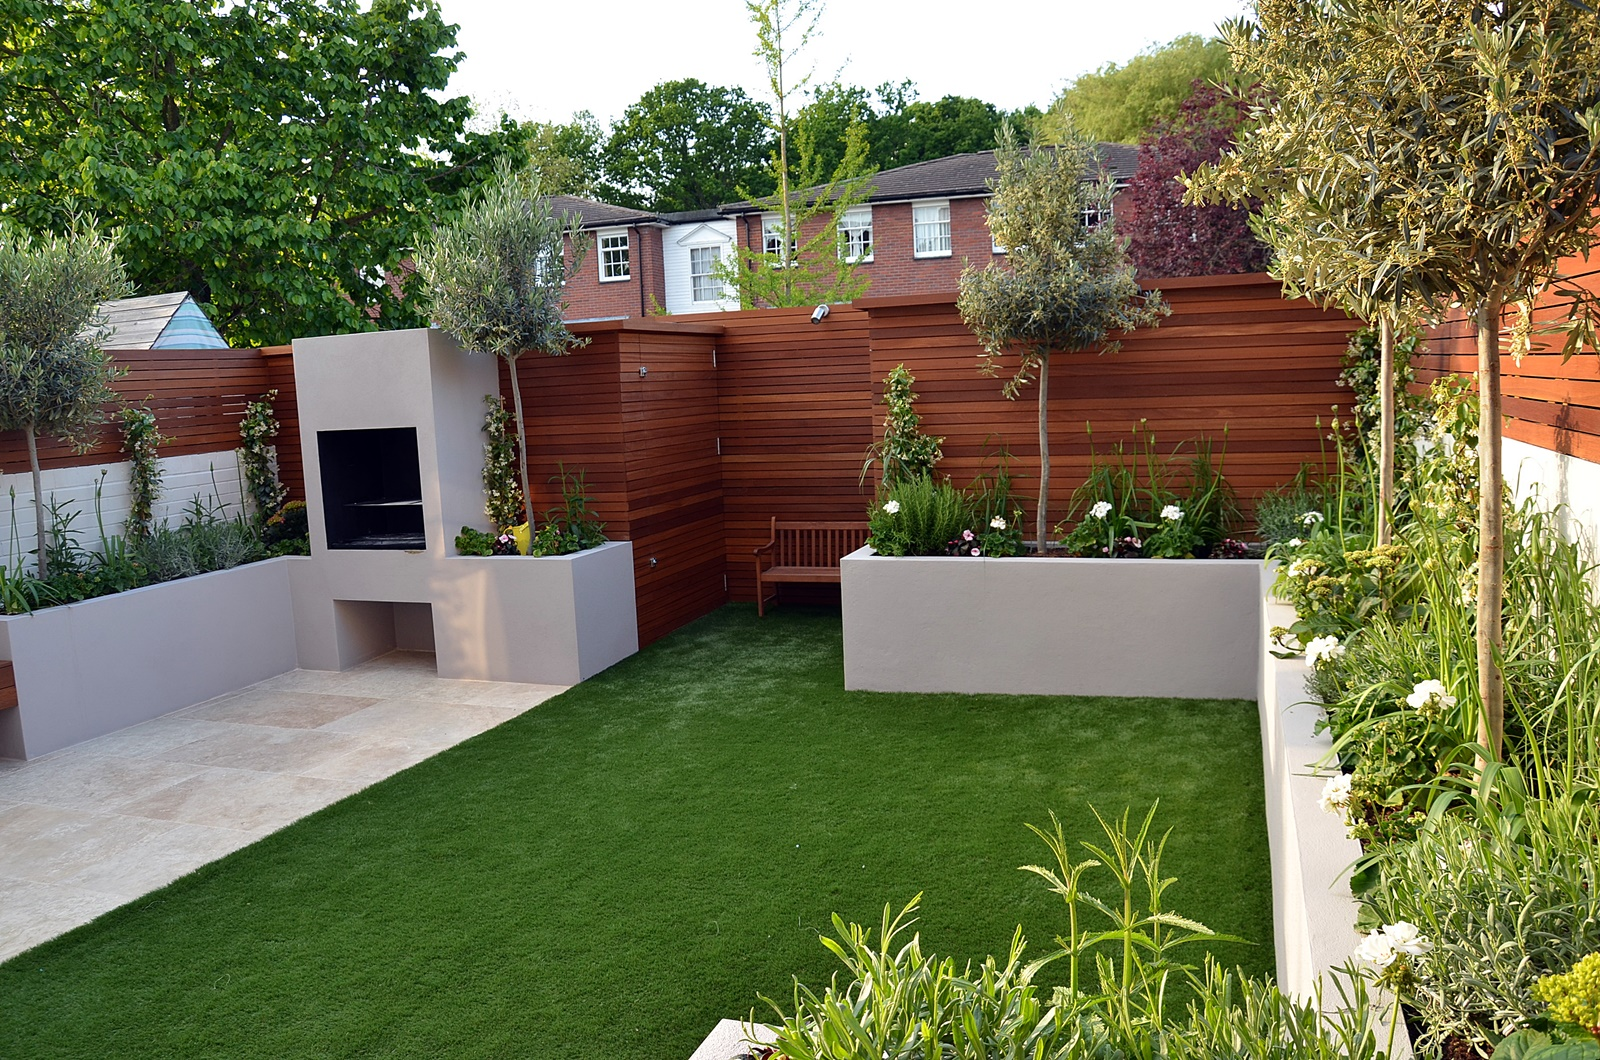 Modern garden design fulham chelsea clapham battersea for Garden design blogs